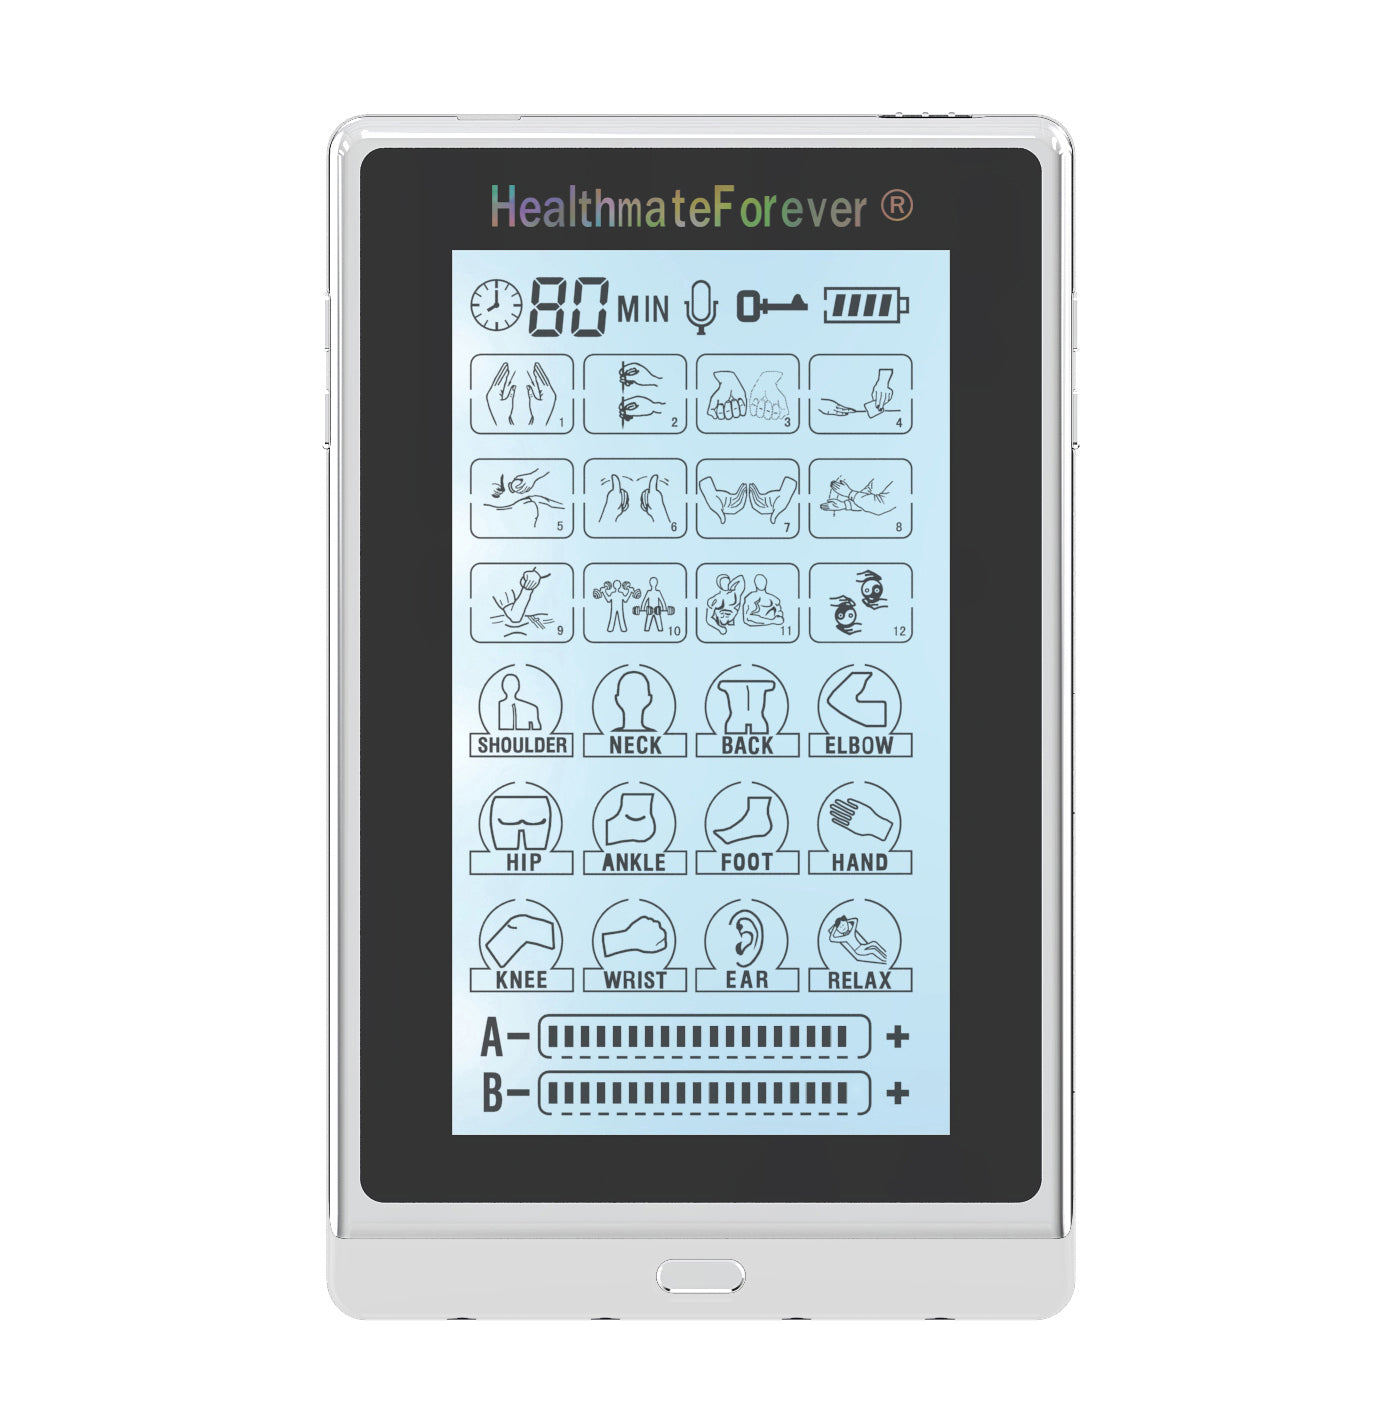 "2020 Version 6"" Touch Screen T24AB3 TENS Unit & Muscle Stimulator - 2 Year Warranty - HealthmateForever.com"